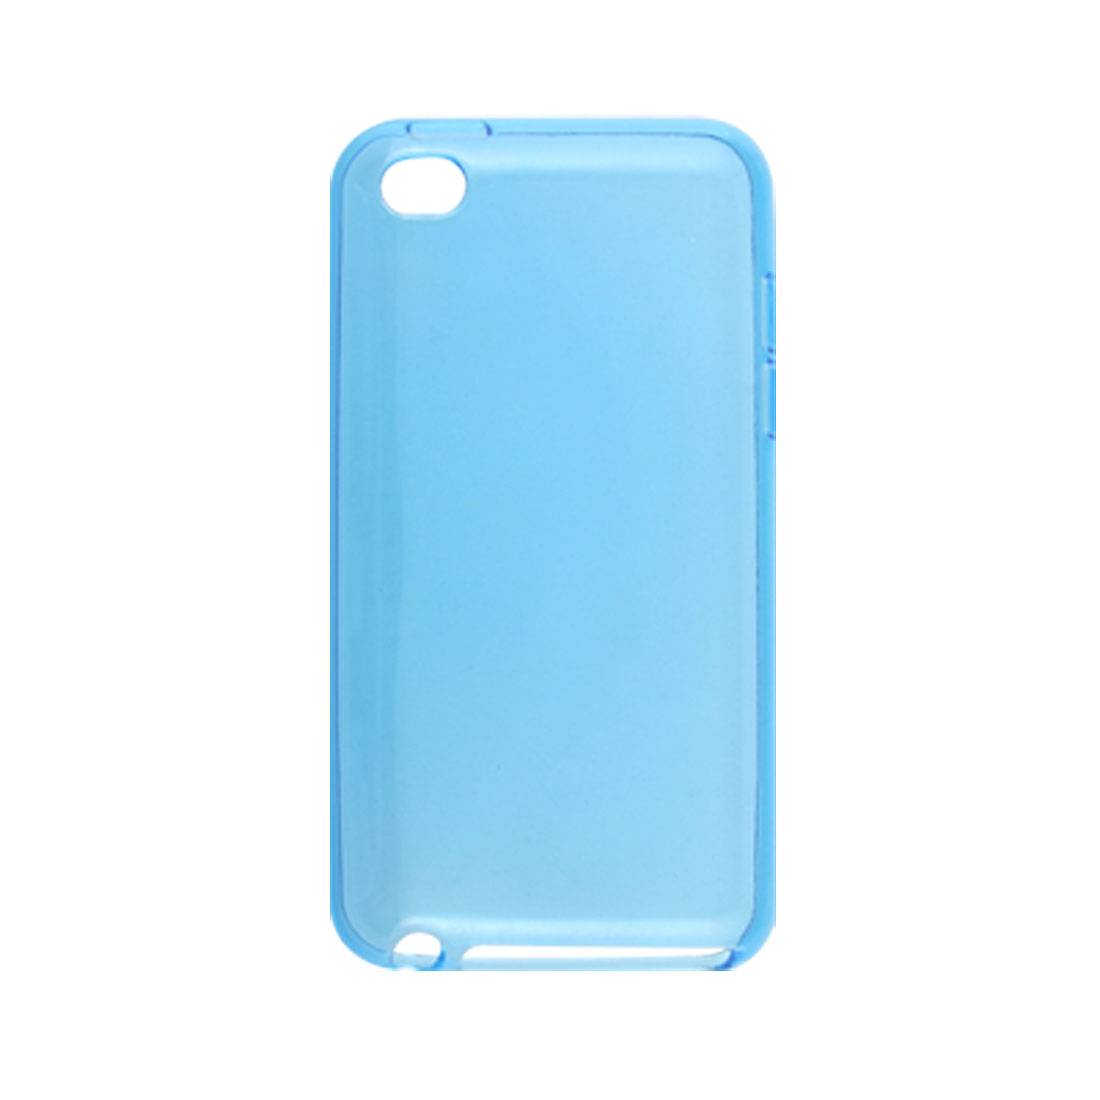 Clear Blue Soft Plastic Back Cover Case for iPod Touch 4